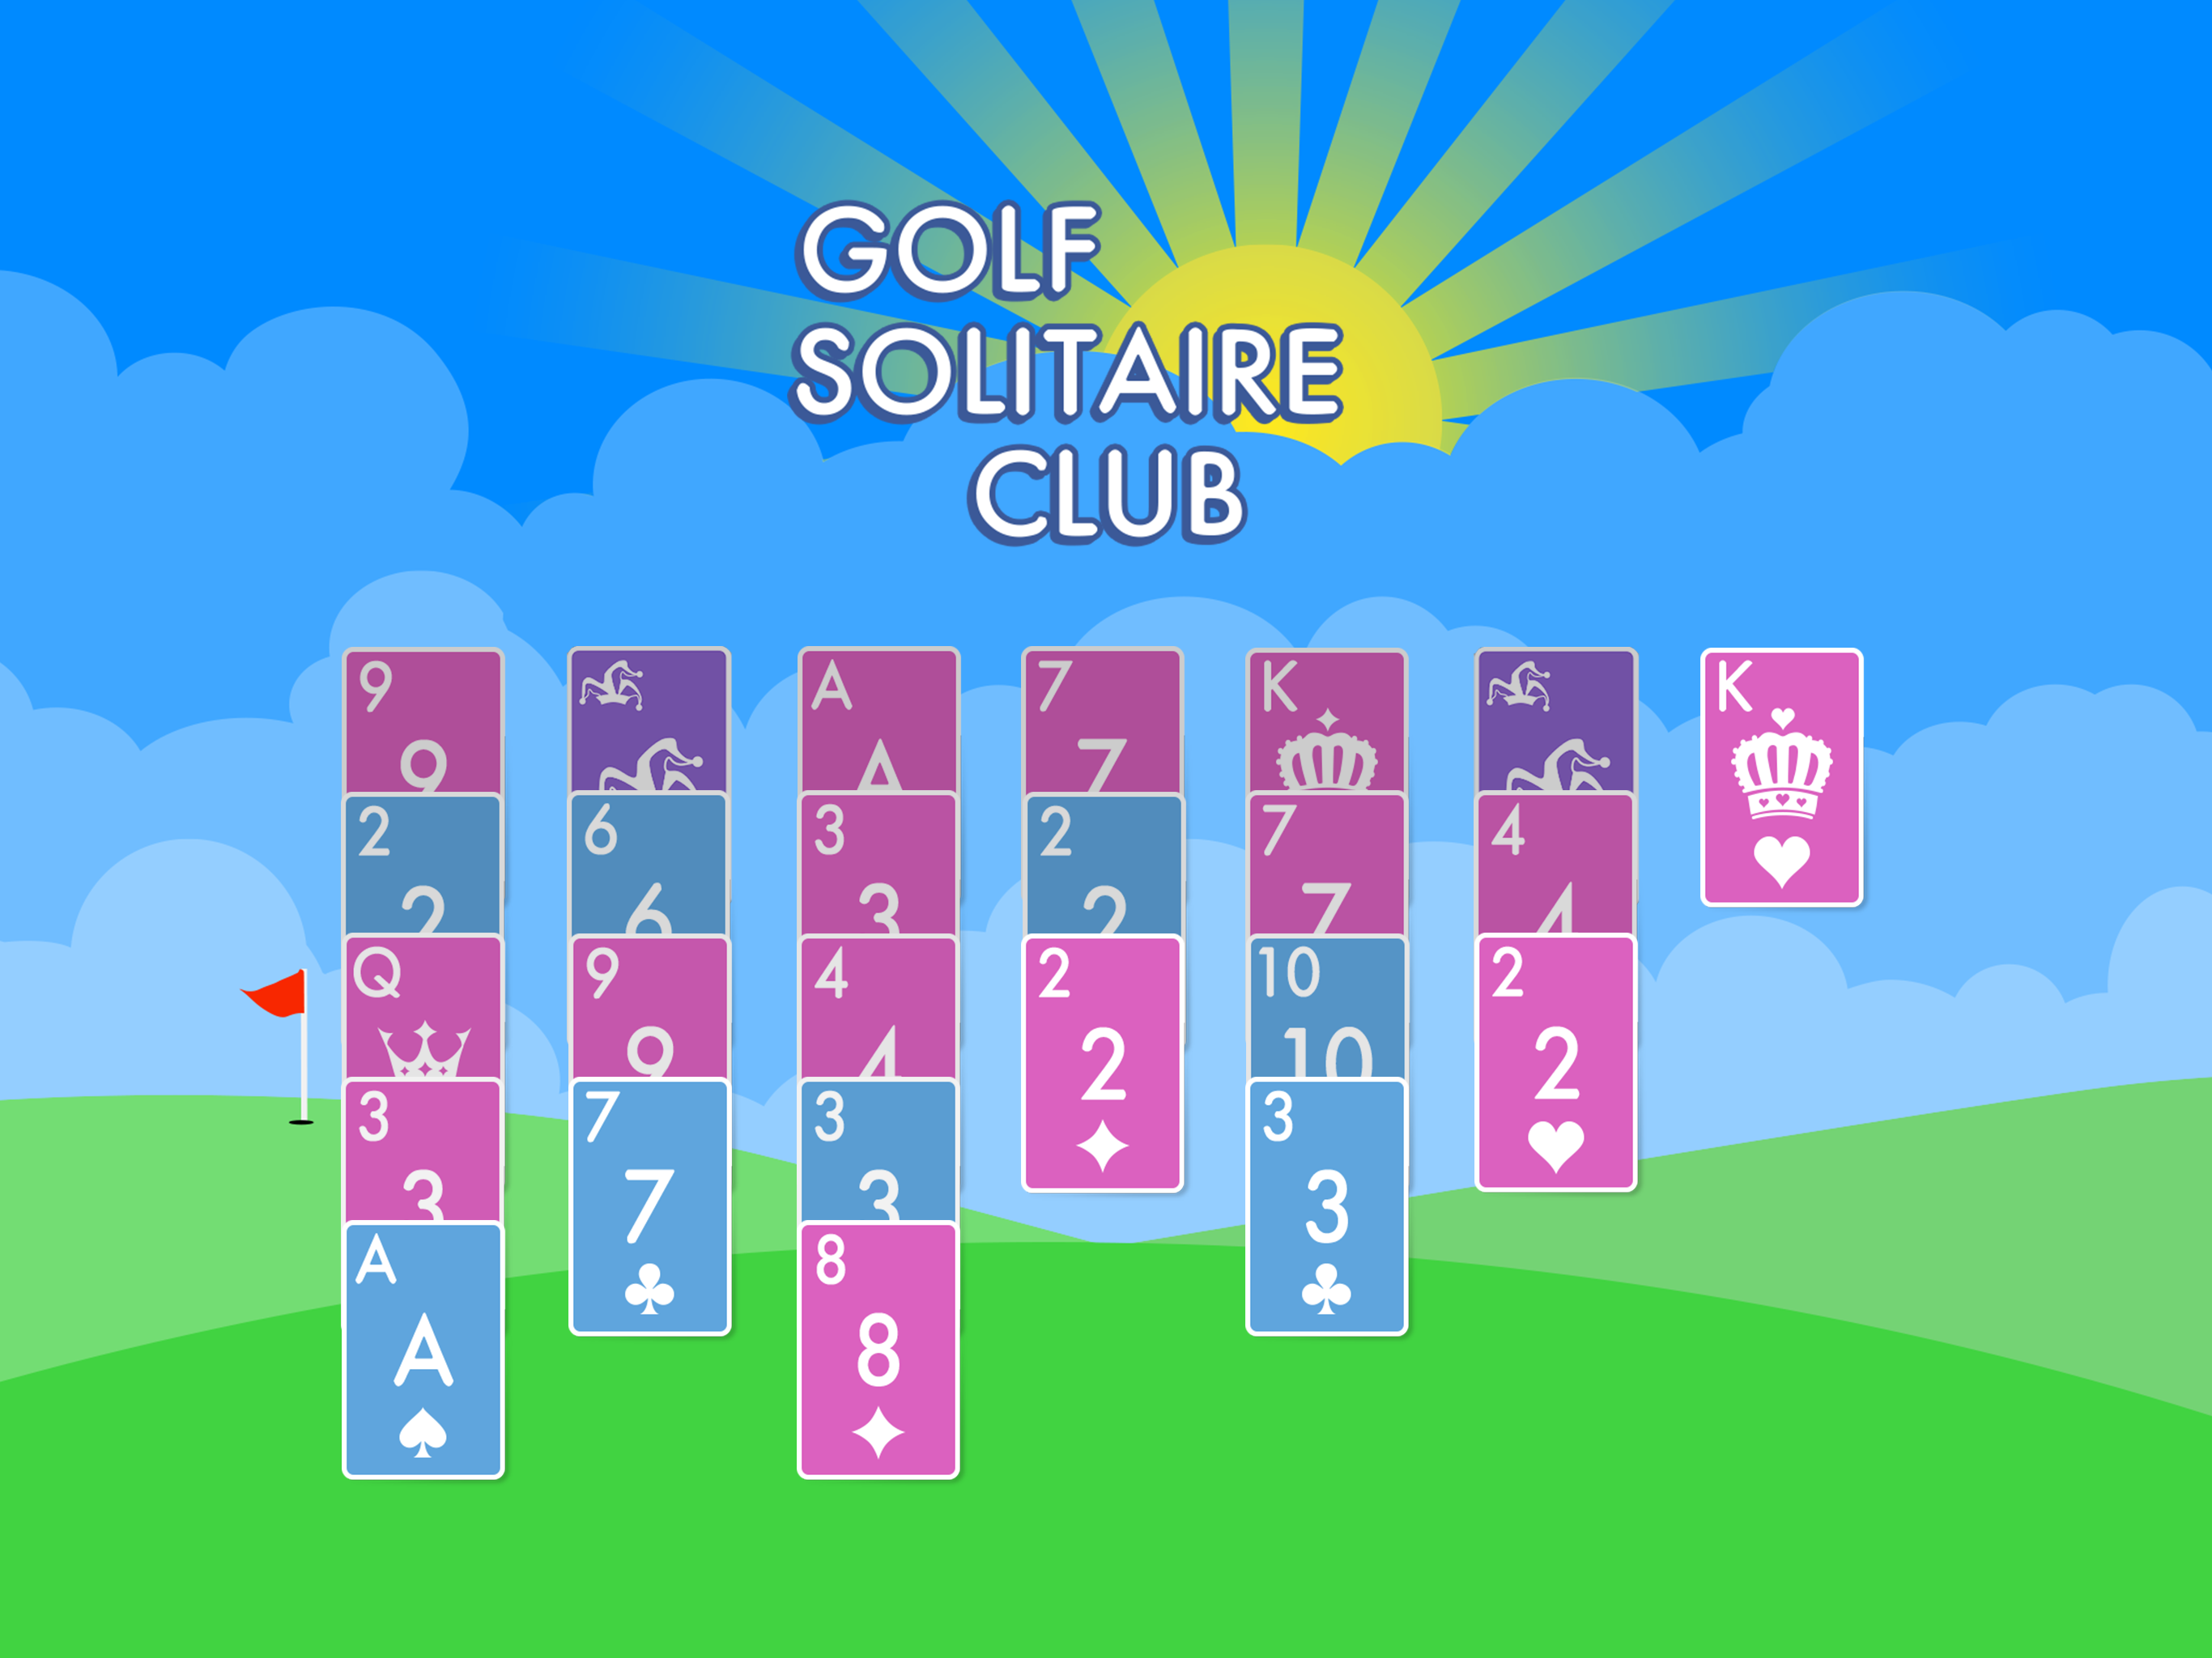 Play Golf Solitaire Club from Glowing Eye Games, maker of